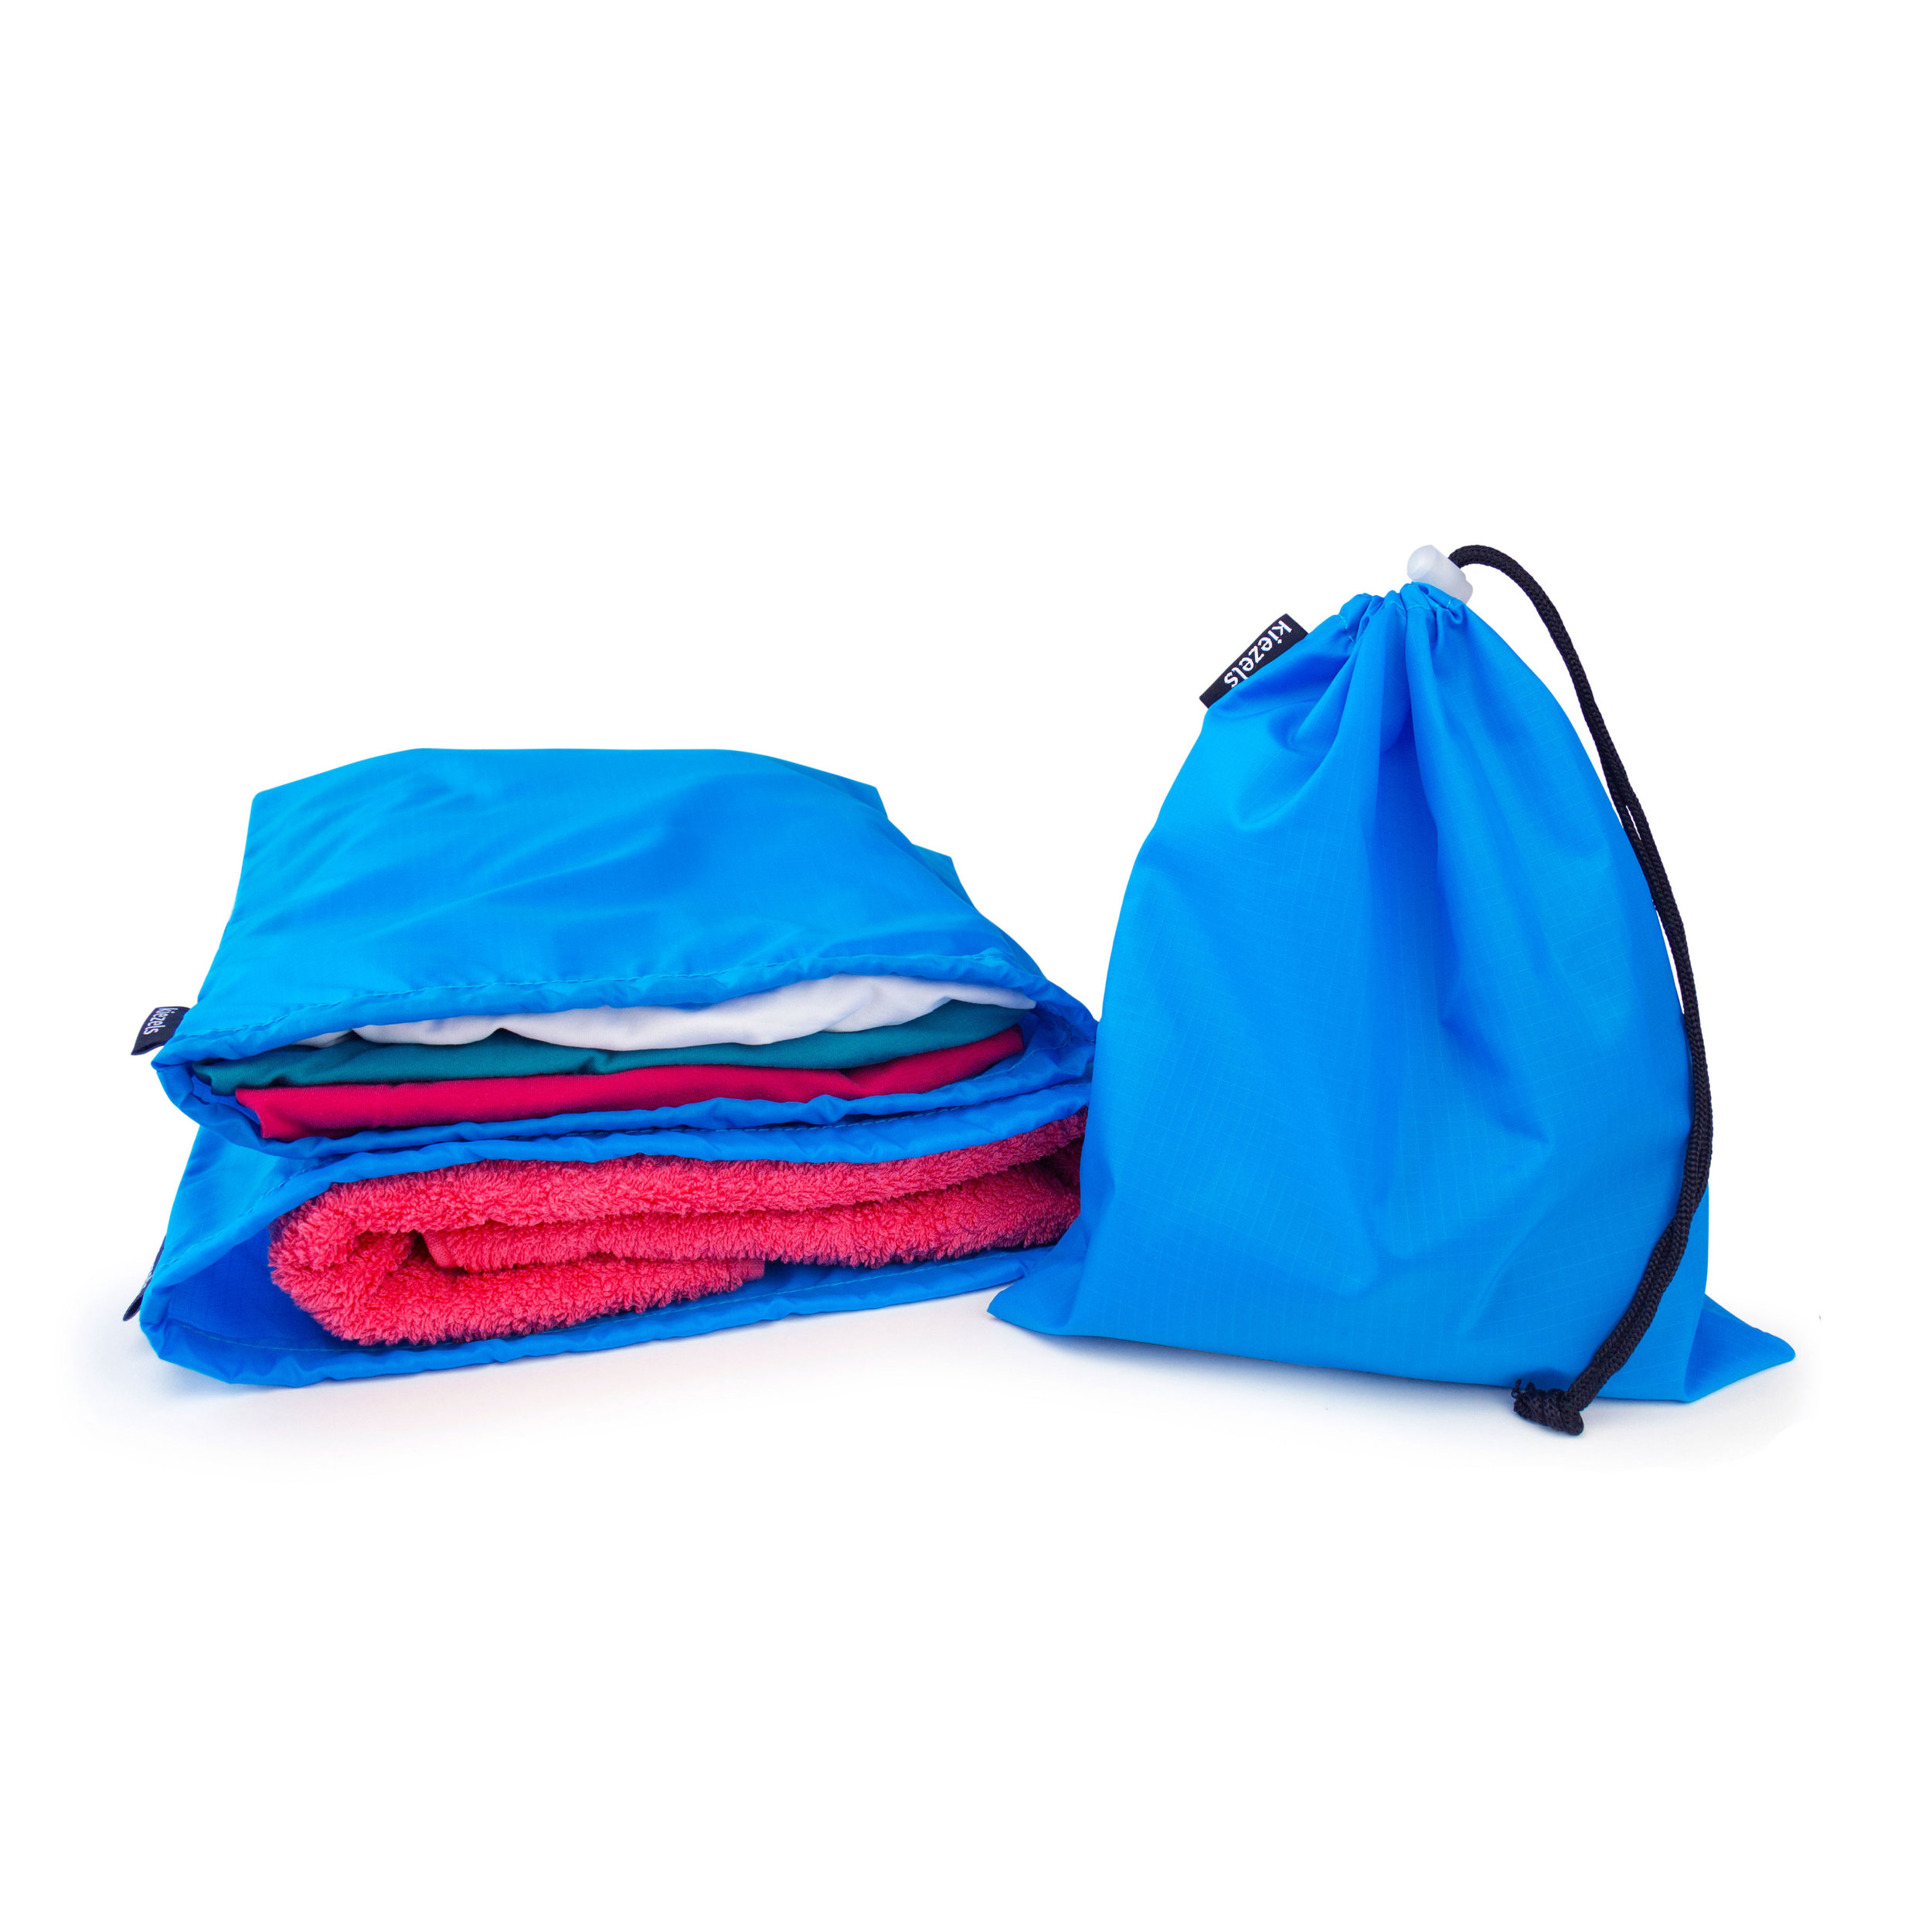 kiezels_travel_organisers_drawstring_blue_207_3vw.jpg